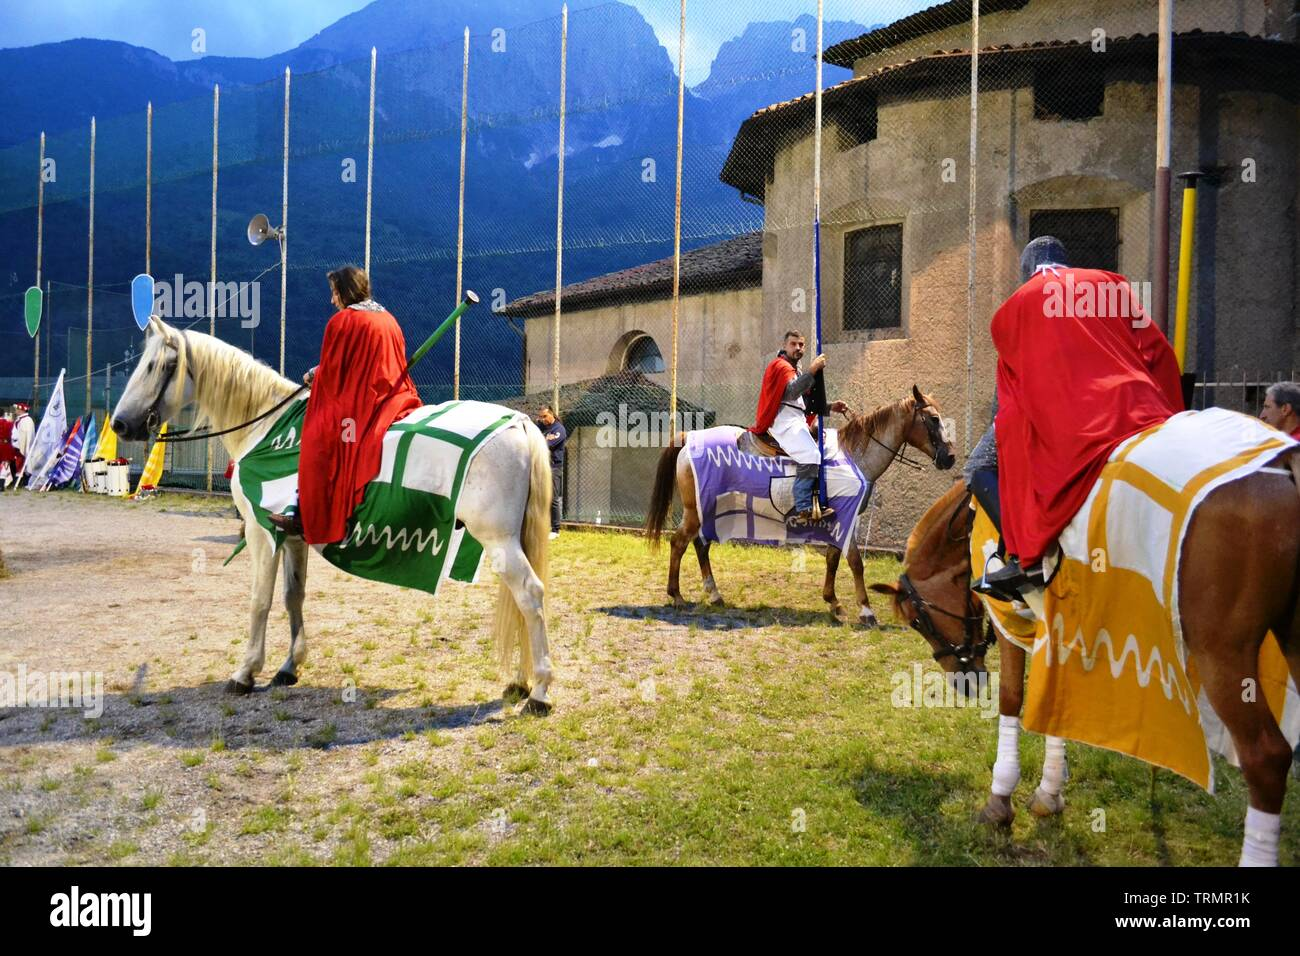 Primaluna/Italy - June 21, 2014: Medieval knights characters ready for rings competition during the Medieval festival of six fractions of the town. Stock Photo